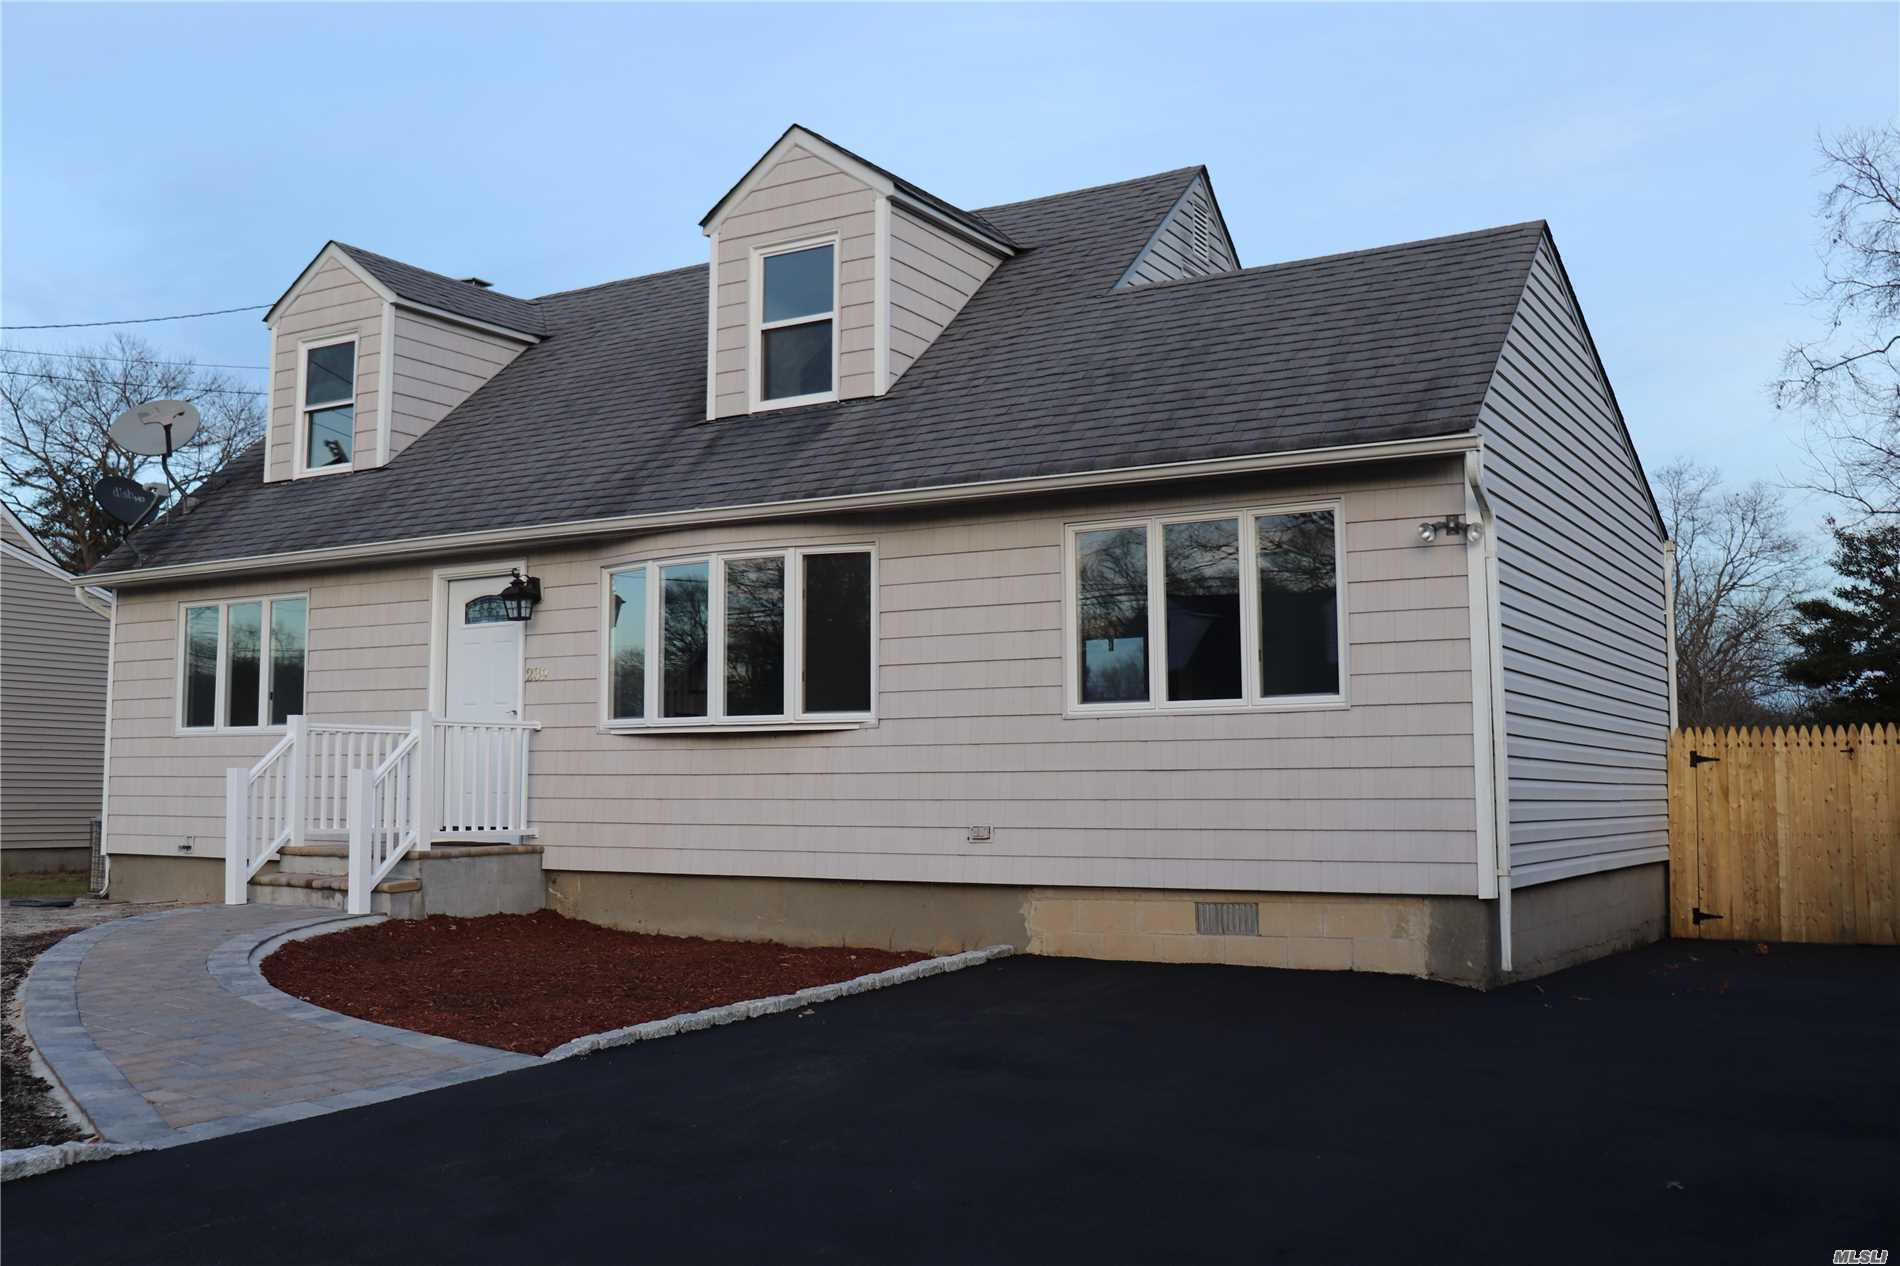 Lovely Updated Cape With Top Quality Finishes. Great Location! This Home Features 4 Bedrooms 2 Baths. Open Floor Plan. New Kitchen W/Granite And Samsung Stainless Steel Appliances. Hardwood Floors Throughout The House. Formal Living Room. Formal Dining Room W/ Sliding Glass Doors Leading To Large Deck, Pool & Fully Fenced In Backyard. New Water Heater. Cac, 200Amp Electric And Much More.